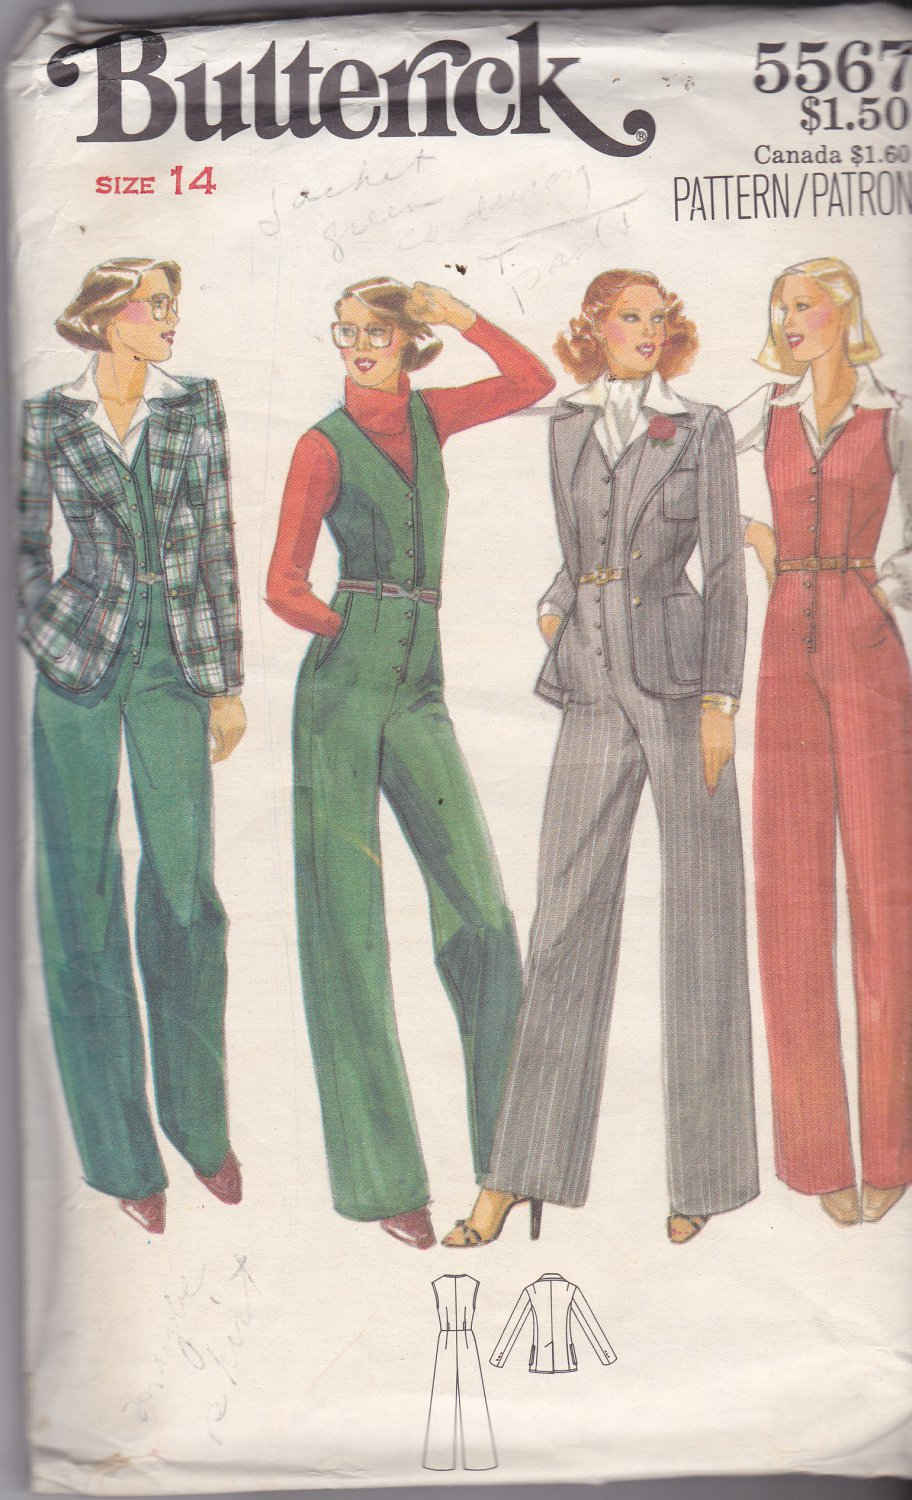 Butterick 5567 size 14, may be missing pieces, 50 cents plus shipping